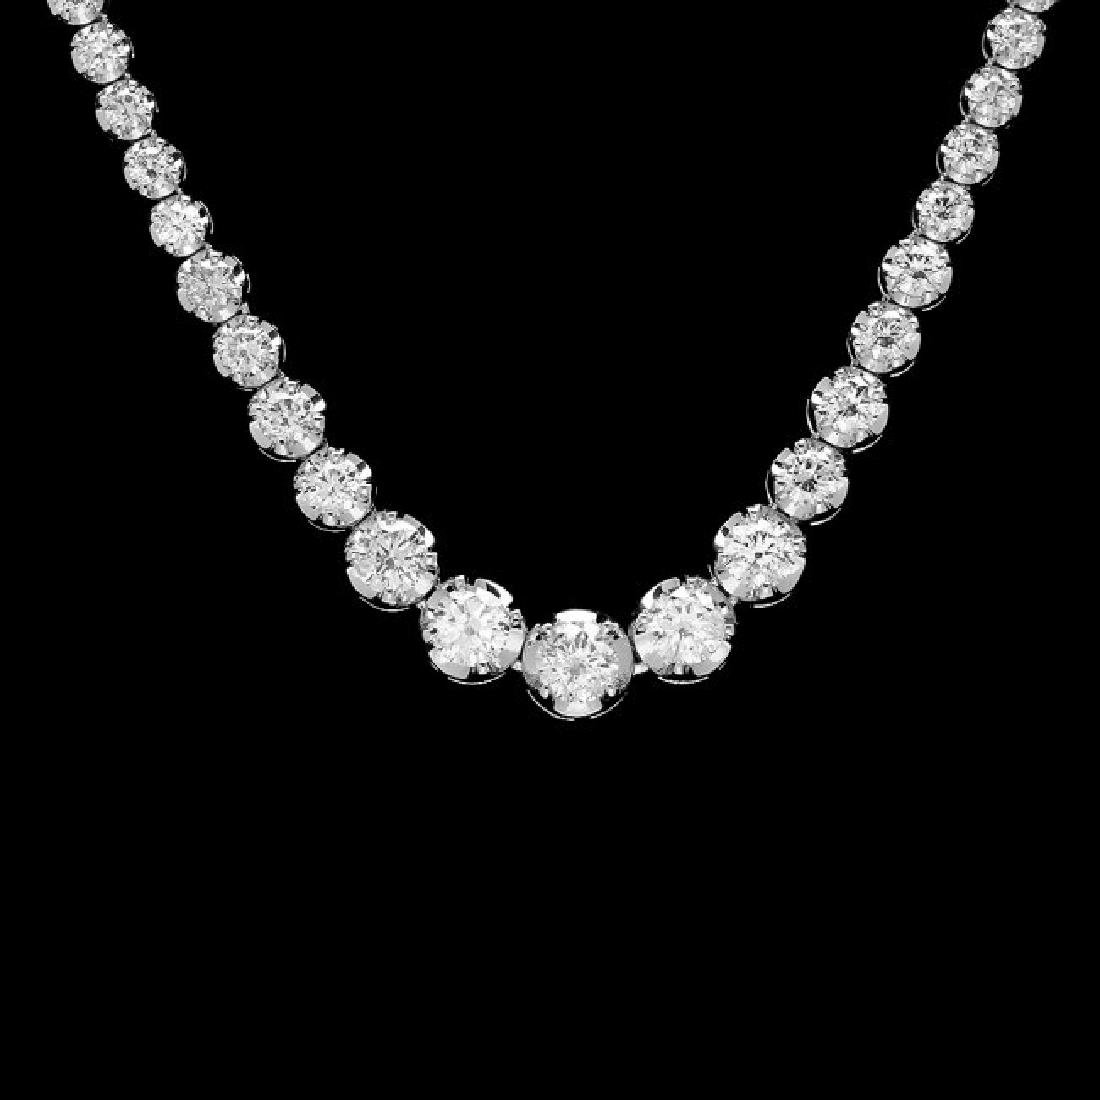 18k White Gold 11.60ct Diamond Necklace